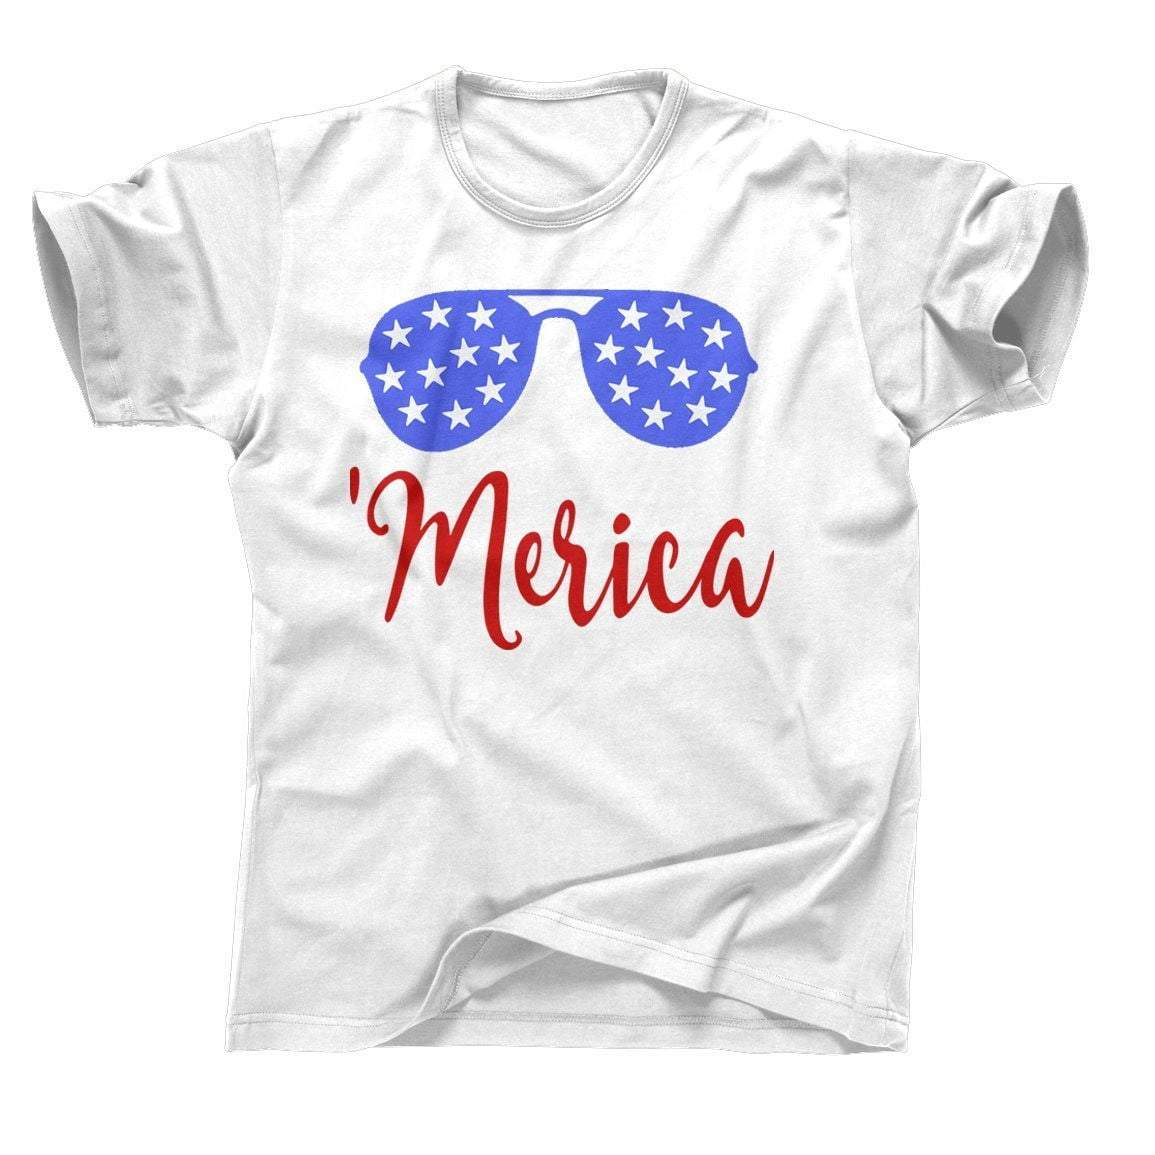 8a8bf483 Funny 4th of July Shirts for Men and Women   21 Threads – Page 2